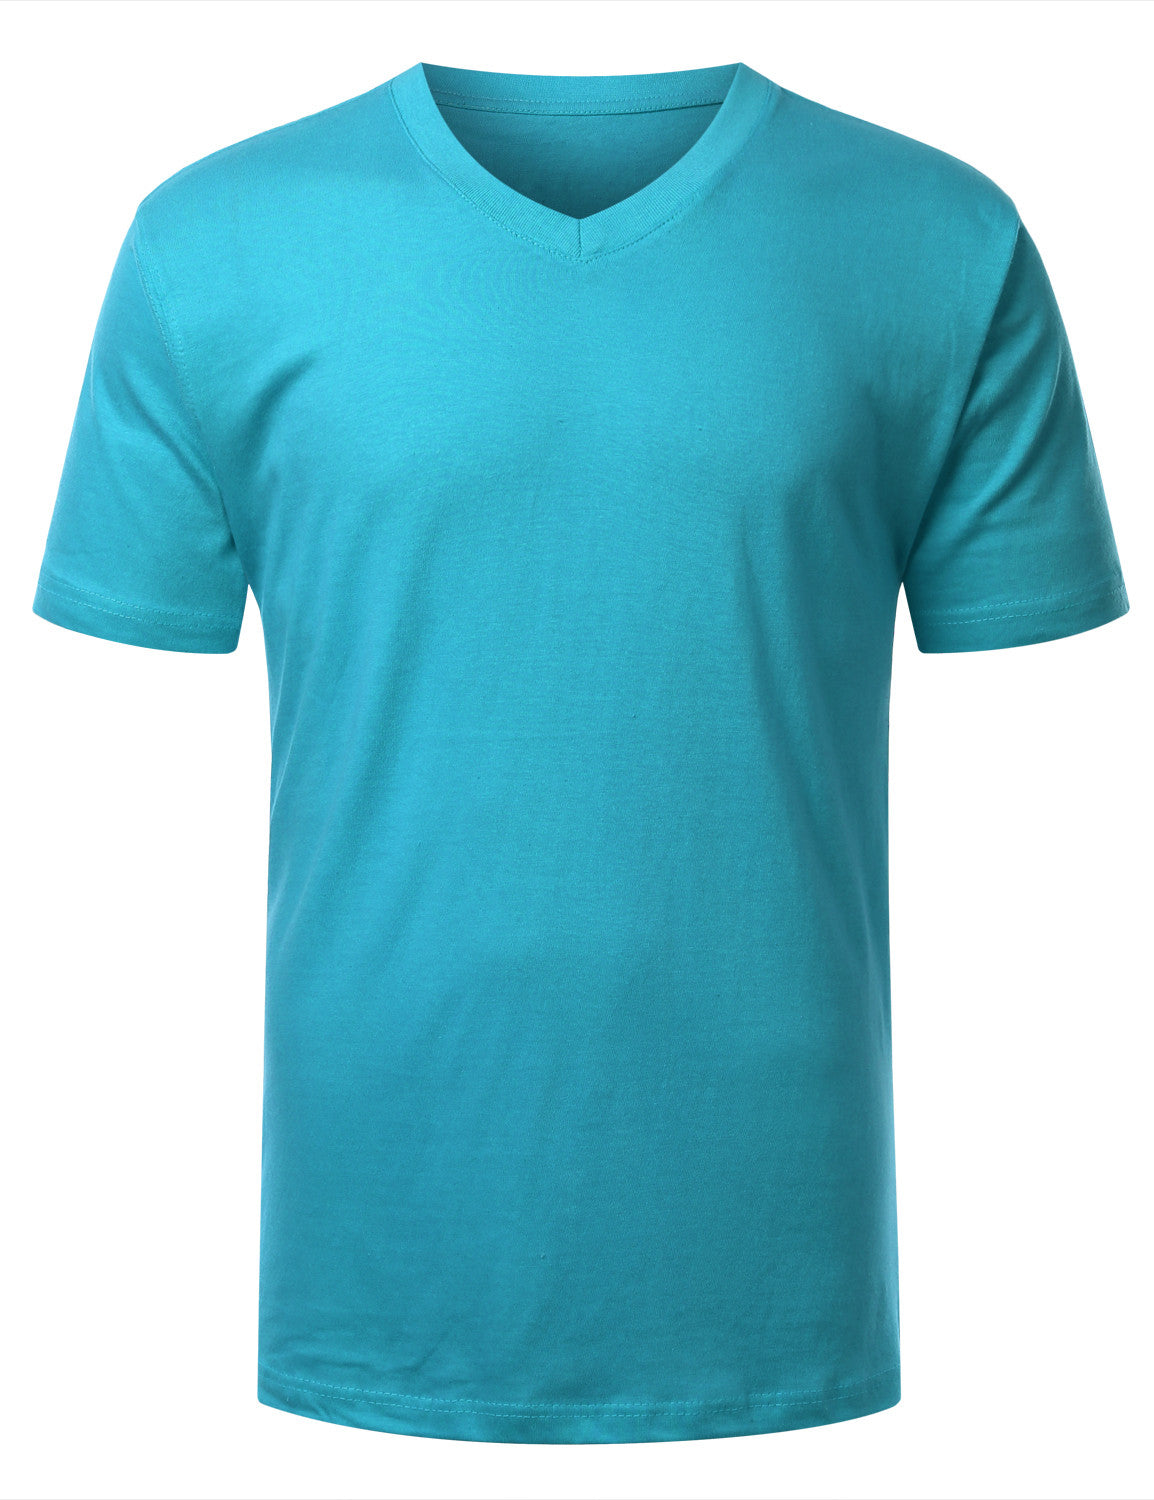 AQUA Basic V-Neck T-Shirt - URBANCREWS